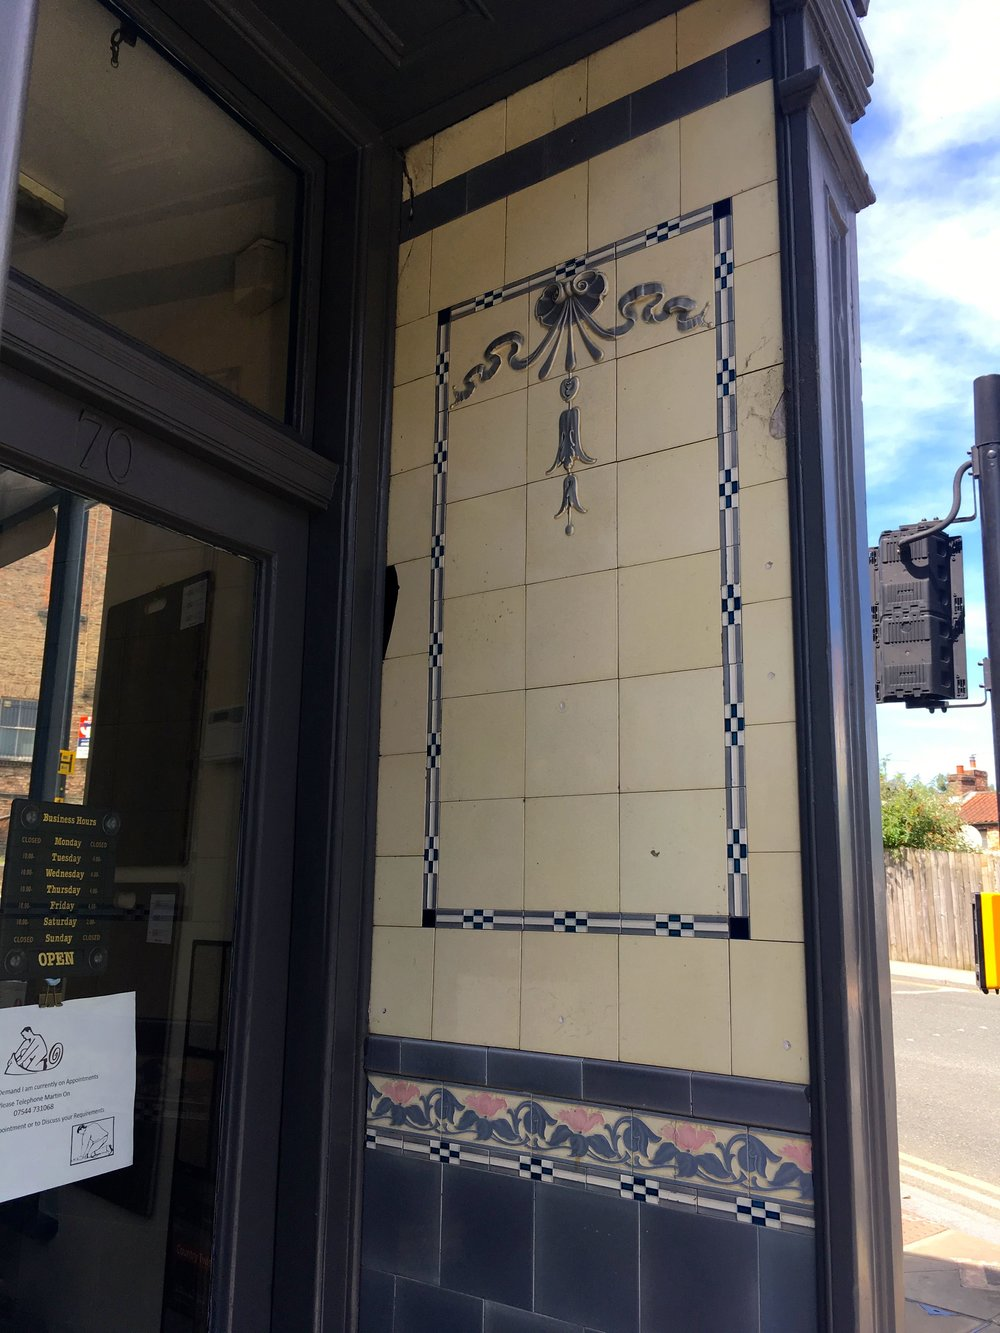 smaller details too - tiles in a shop doorway